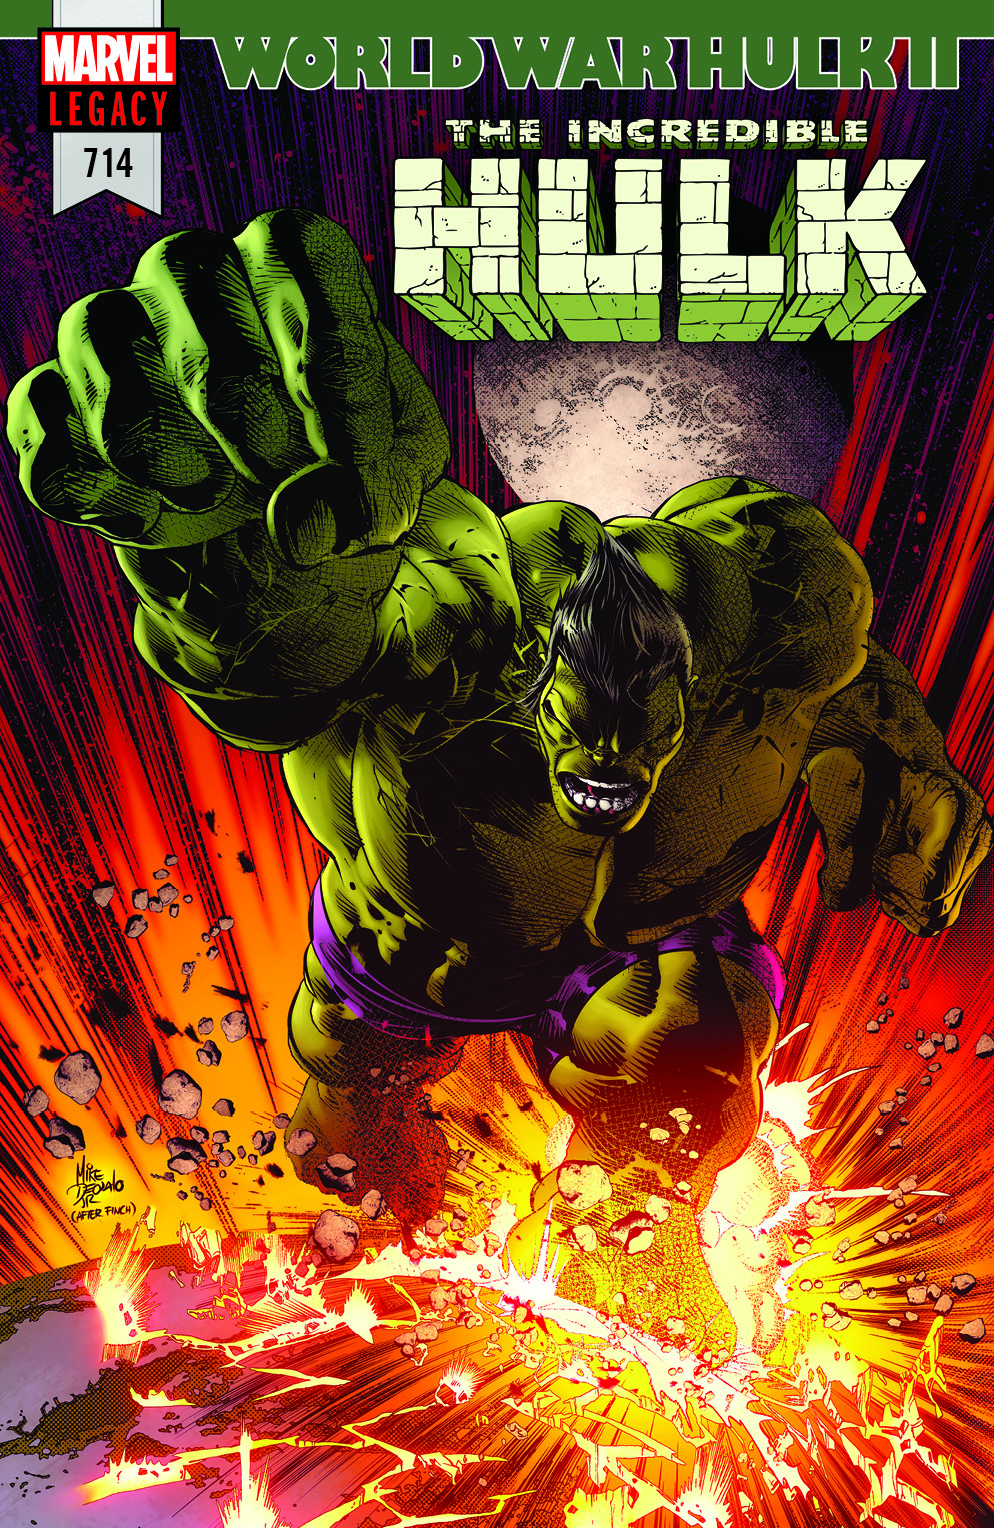 INCREDIBLE HULK #714: WORLD WAR HULK II, Part 1